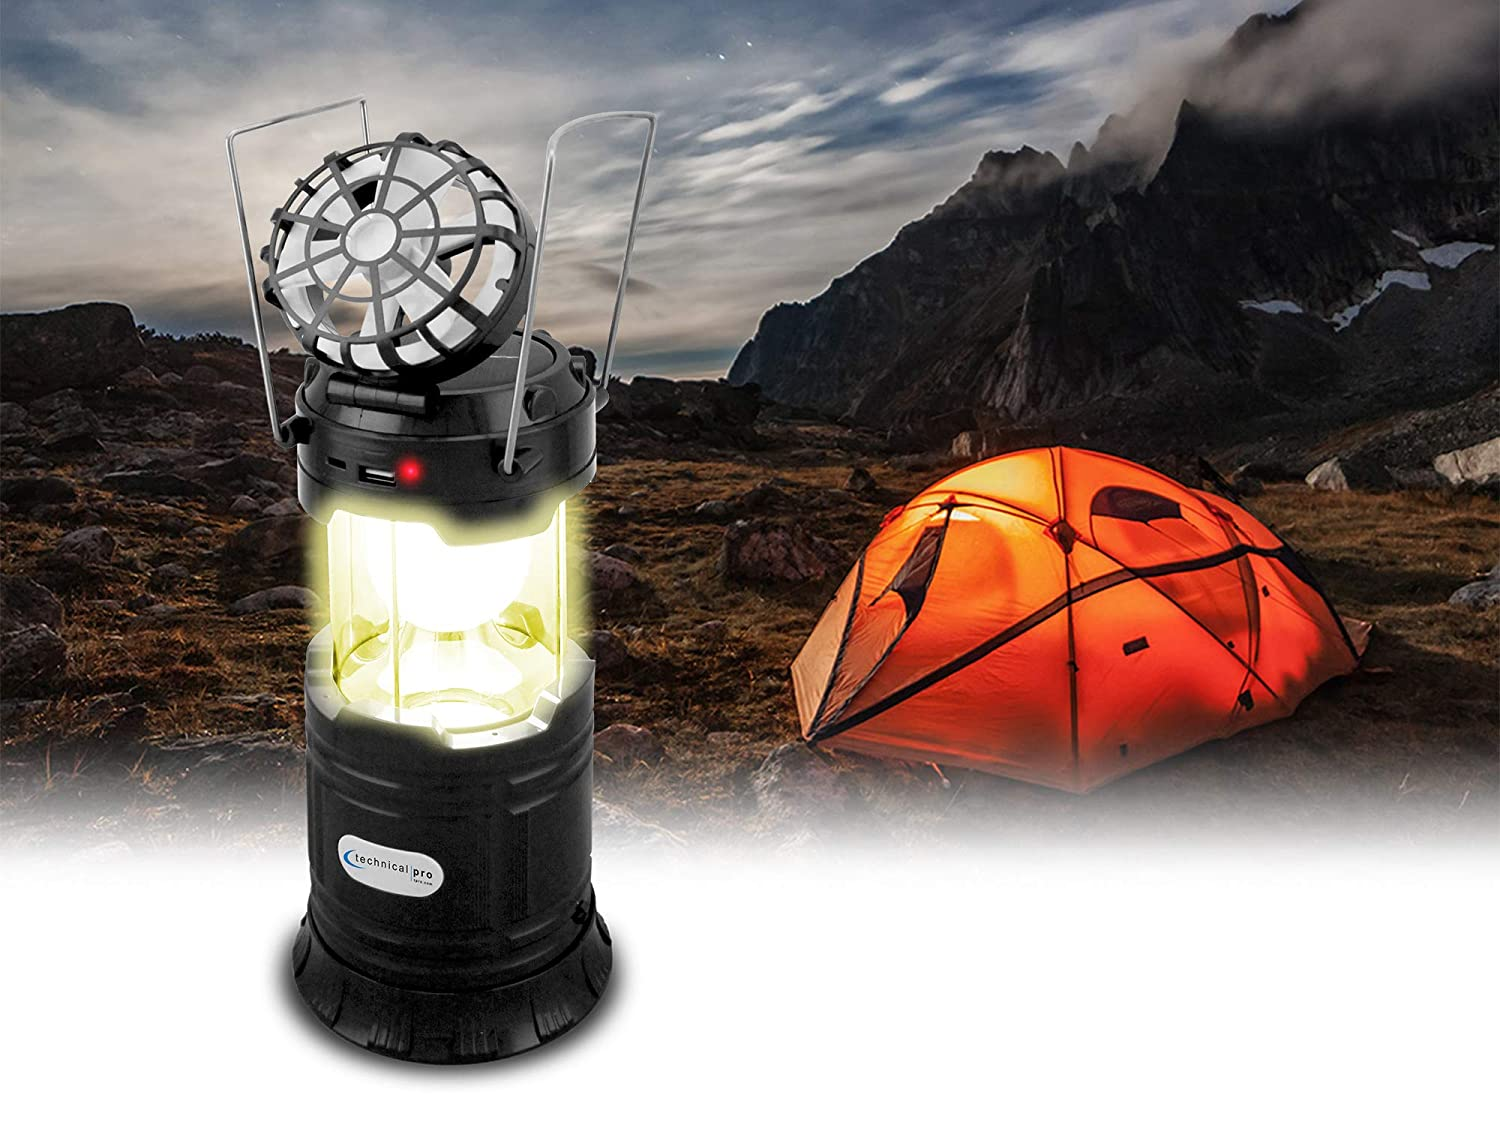 Technical Pro Rechargeable 5-in-1 Outdoor Camping LED Lantern OLF6B